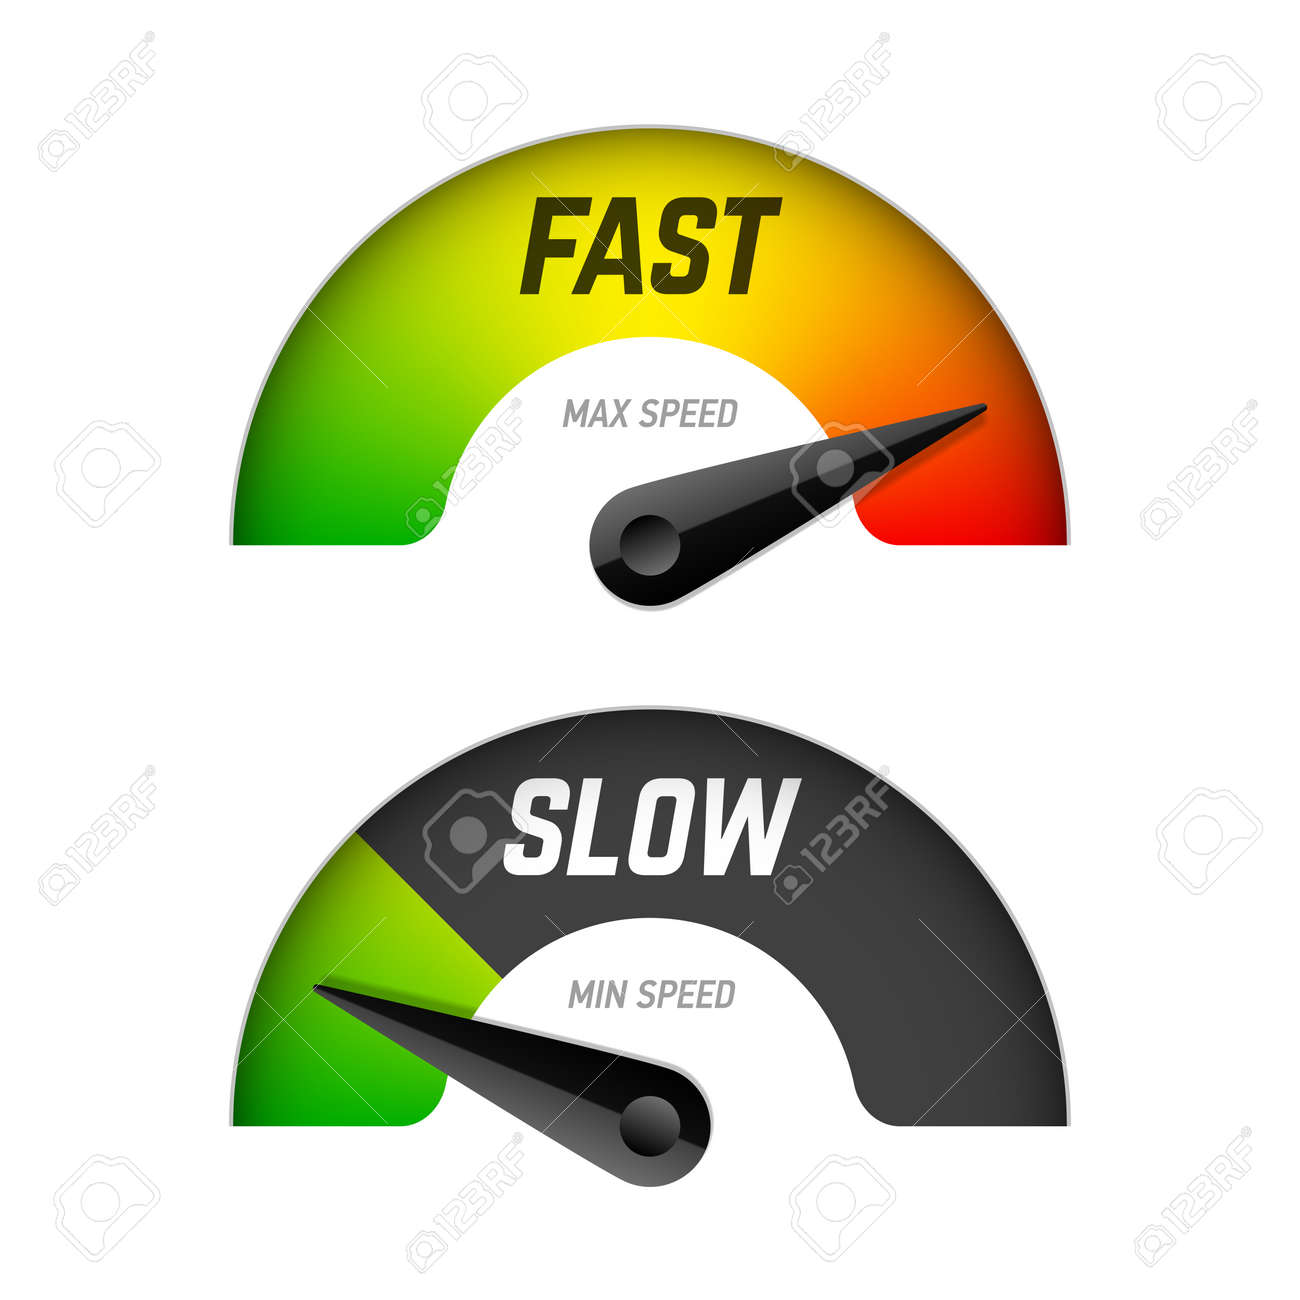 Fast and slow download - 42791912